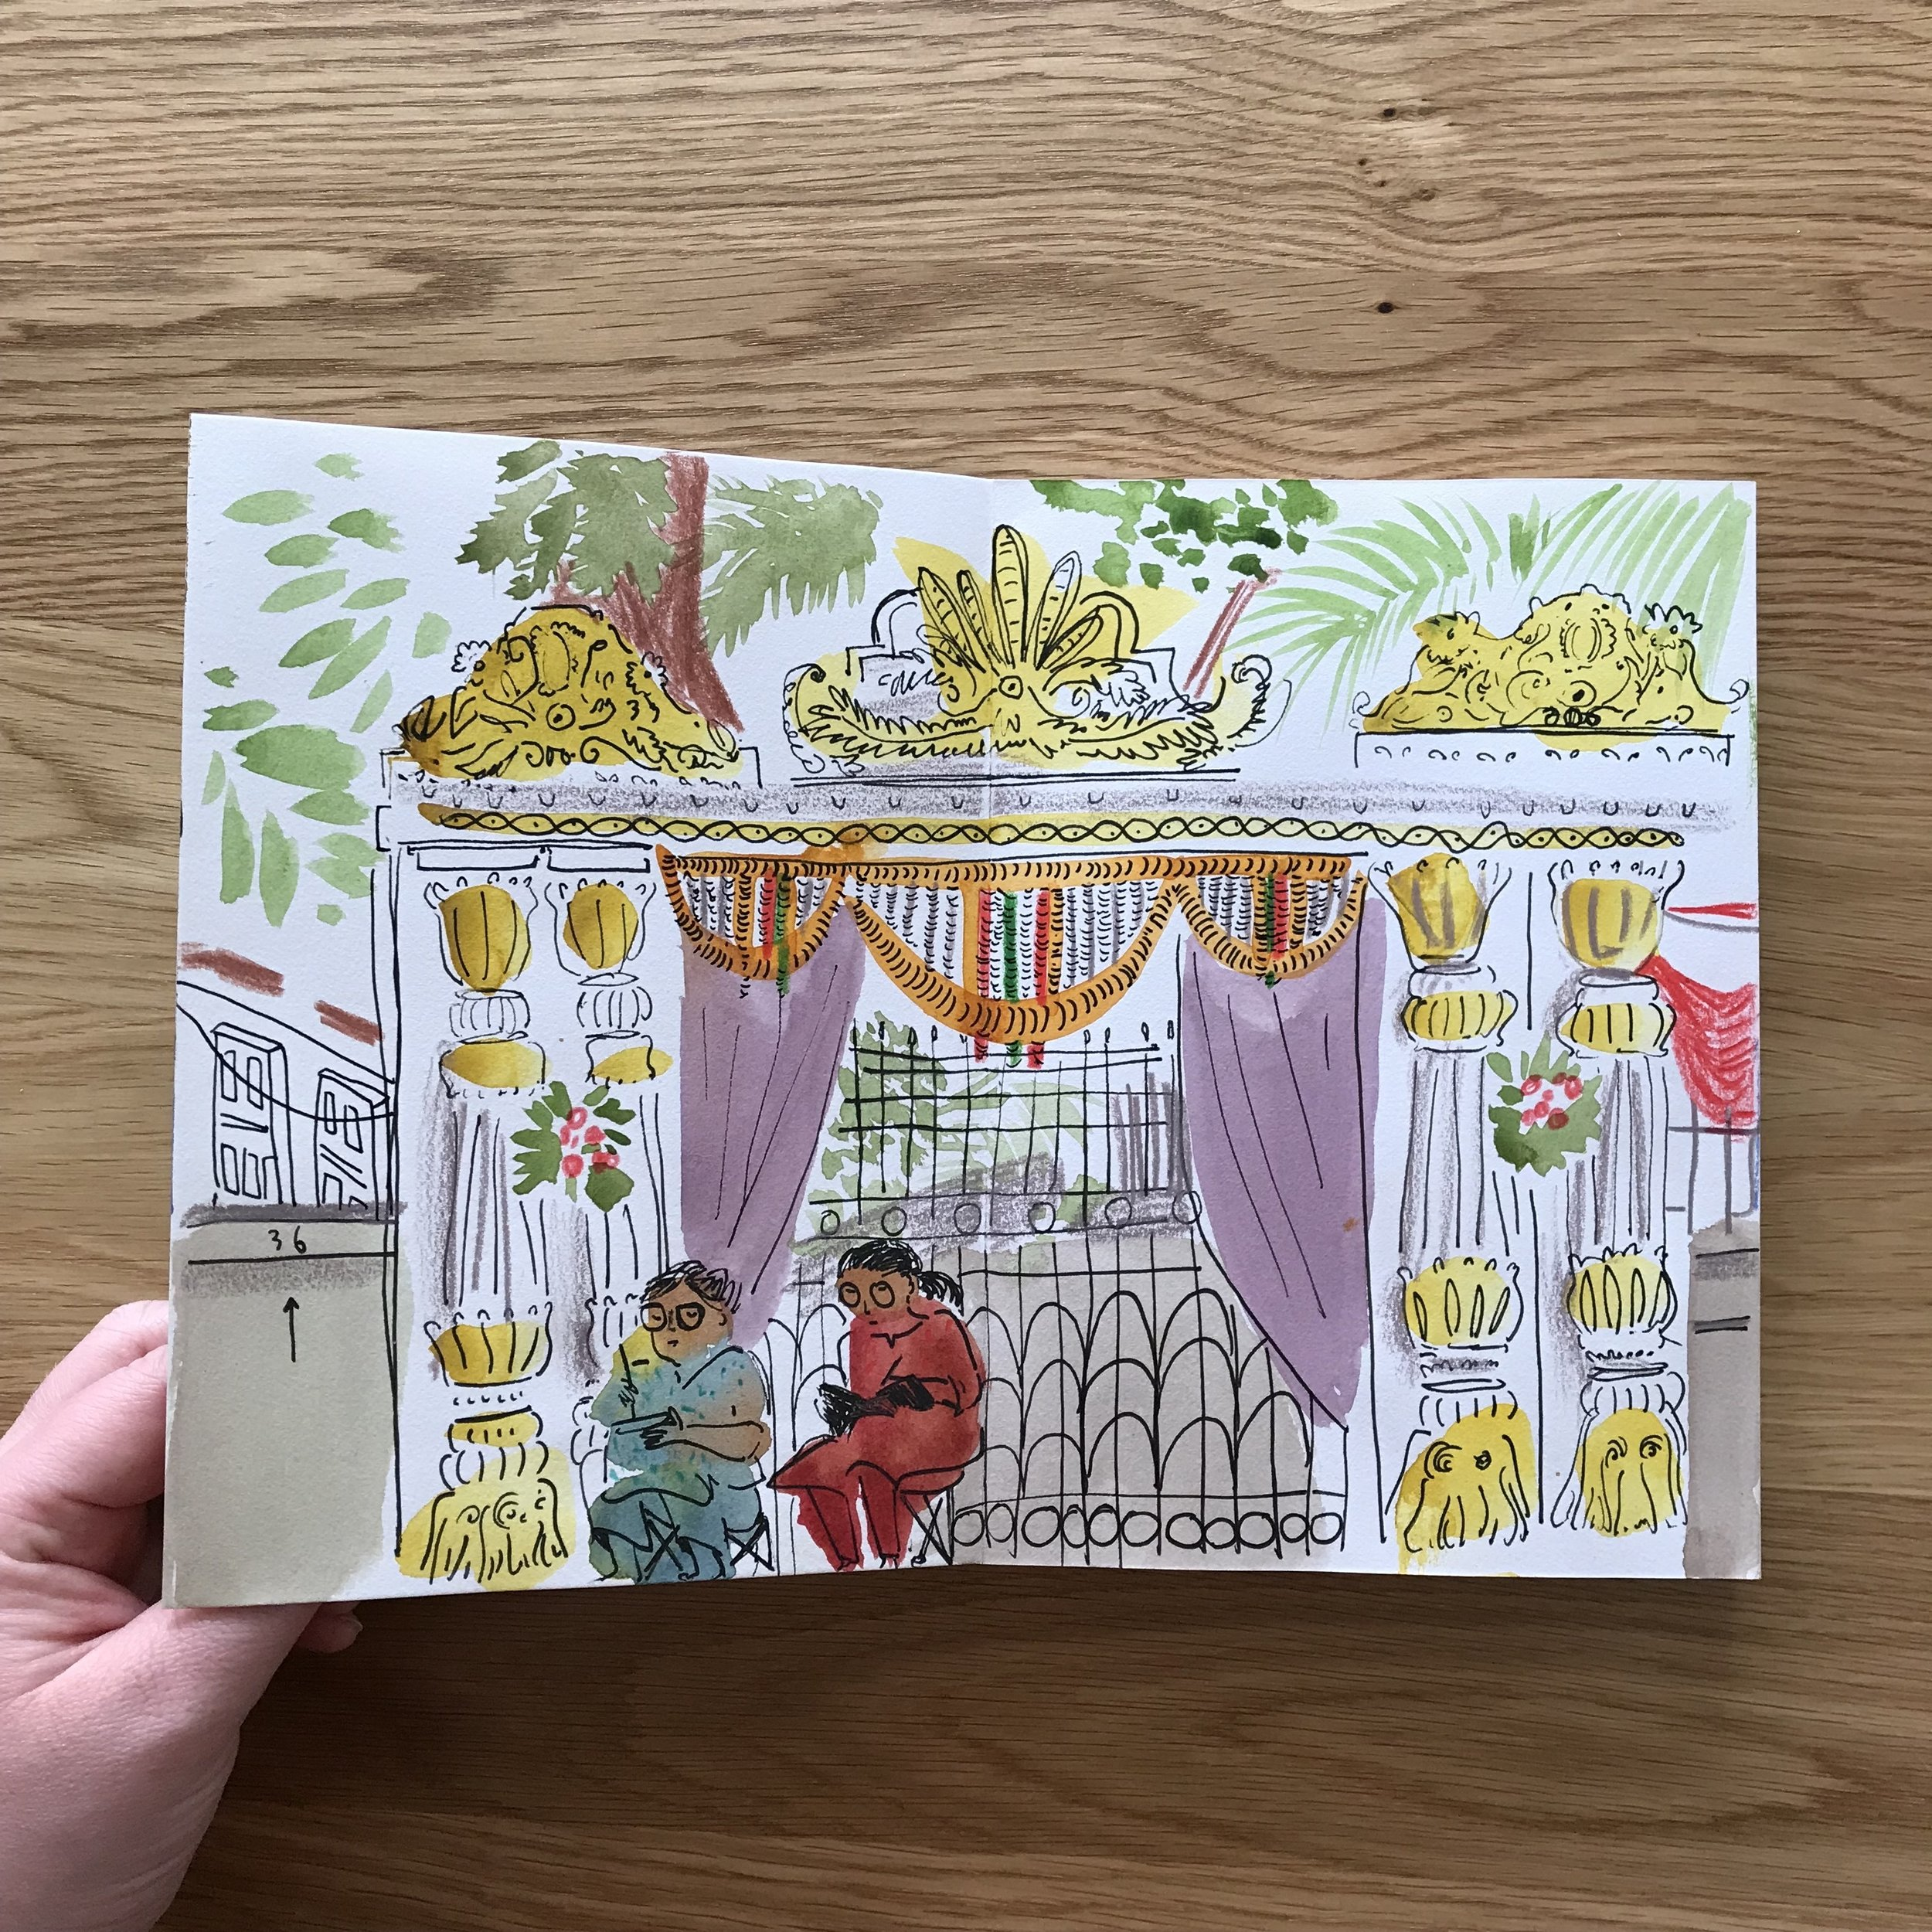 Copy of India-sketchbook-mumbai-katie-chappell-illustrator